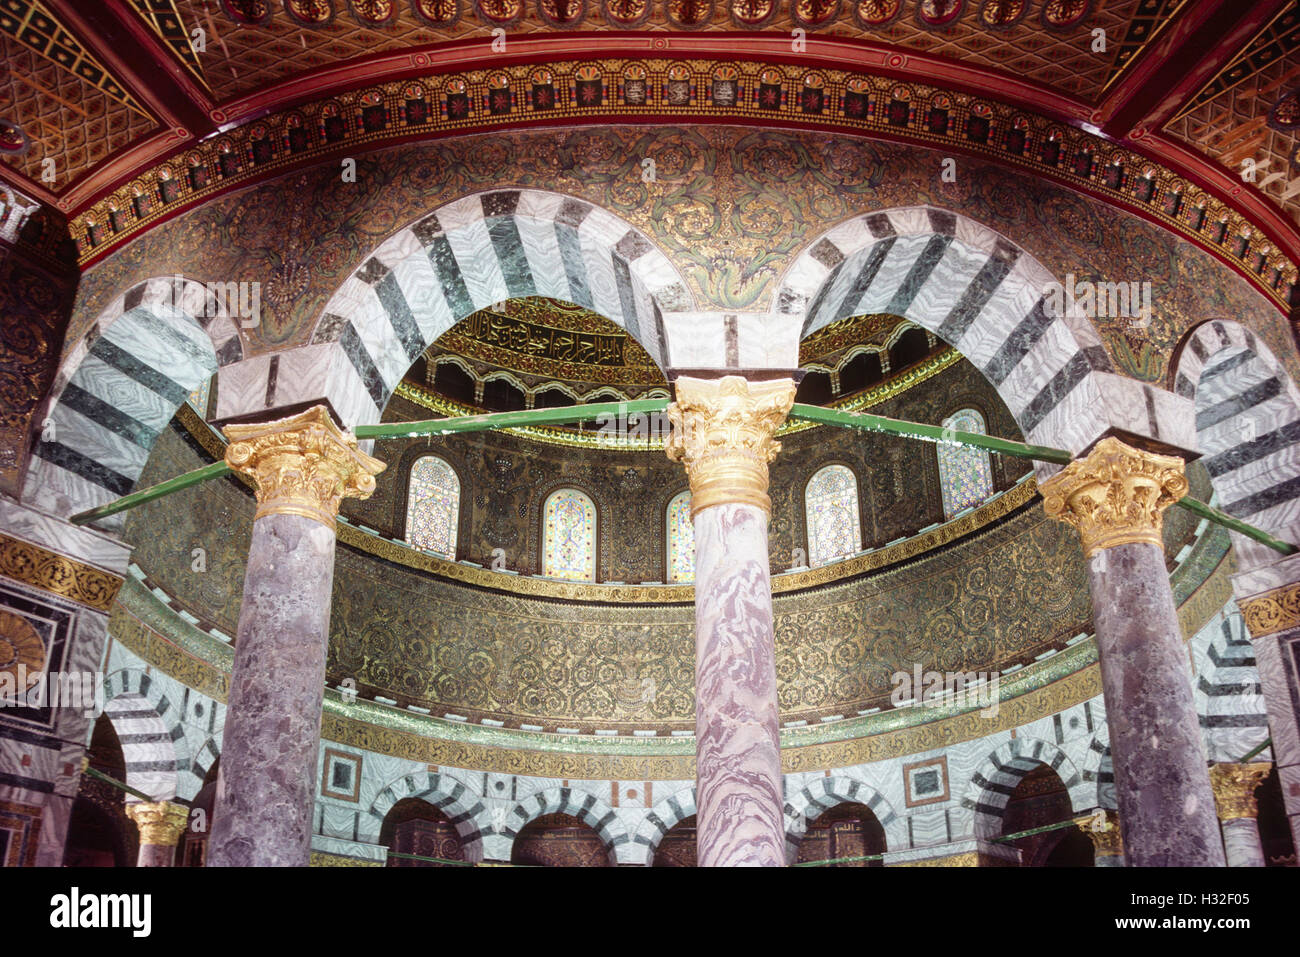 circular arcade supporting the inner dome, The Dome of the Rock, Jerusalem Stock Photo